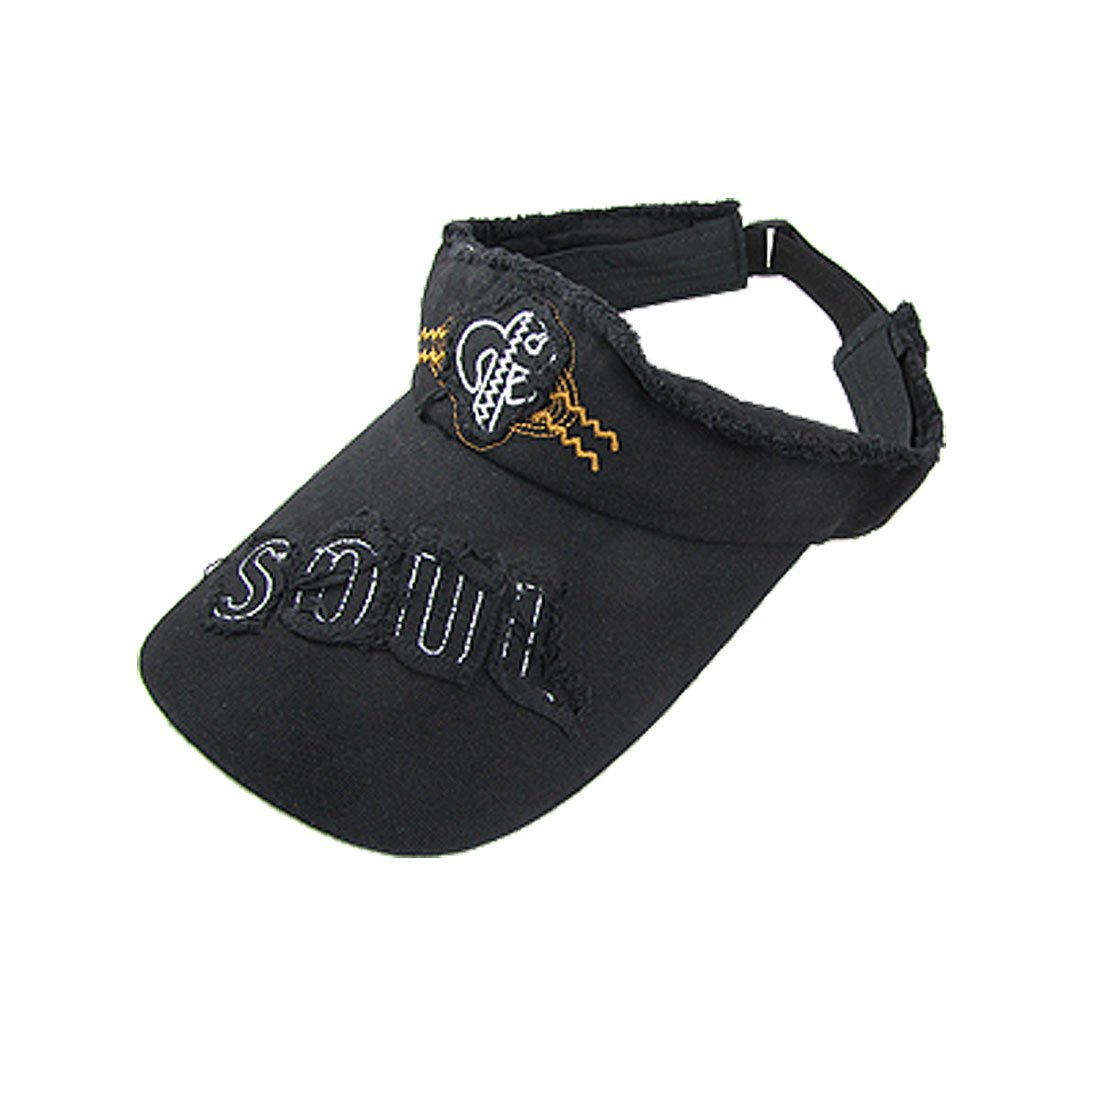 Soul Letters Accent Top Opened Visor Cap Black for Lady